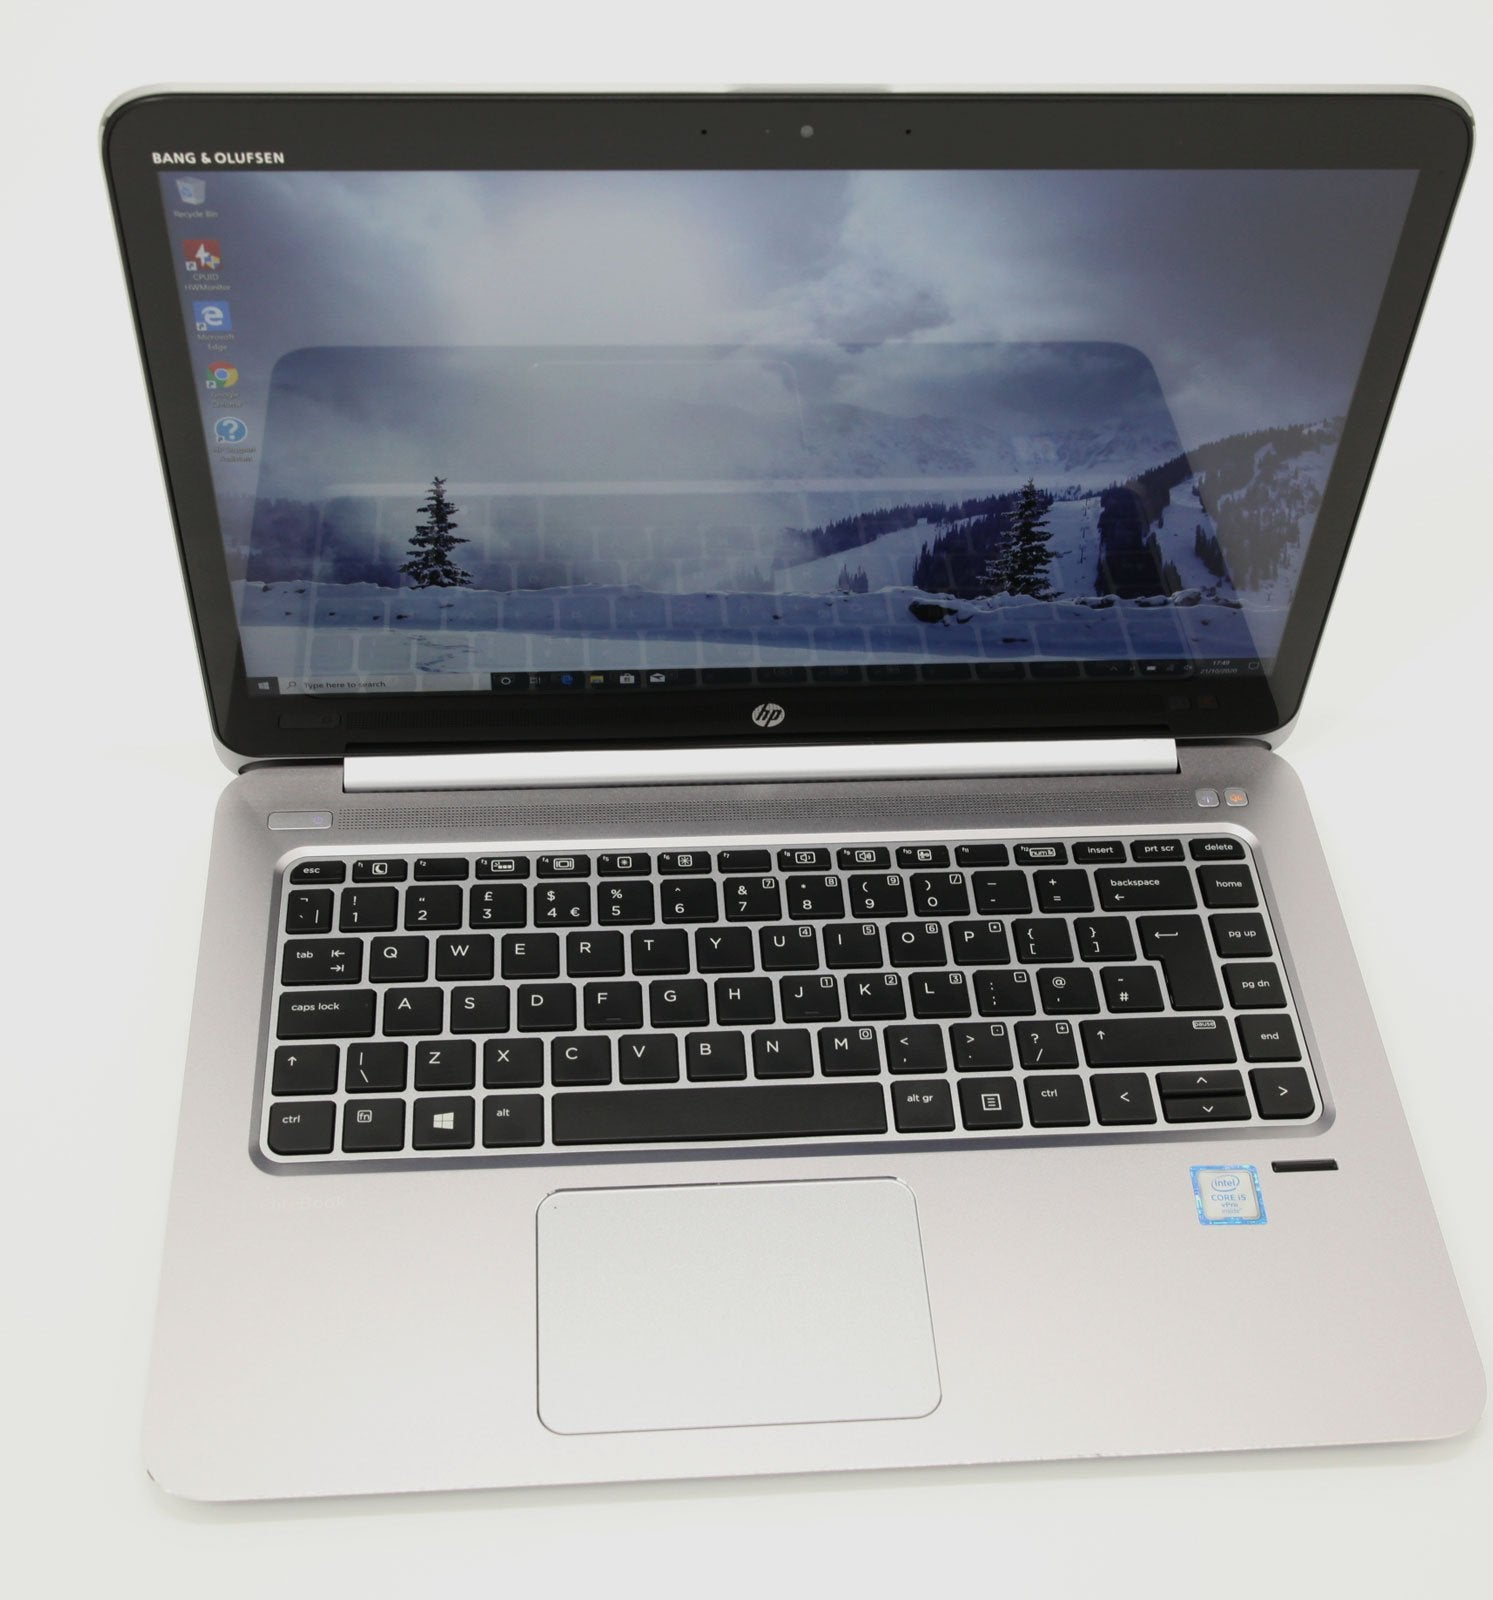 HP EliteBook 1040 G3 QHD Touchscreen Laptop: 16GB RAM, 360GB SSD, Warranty - CruiseTech